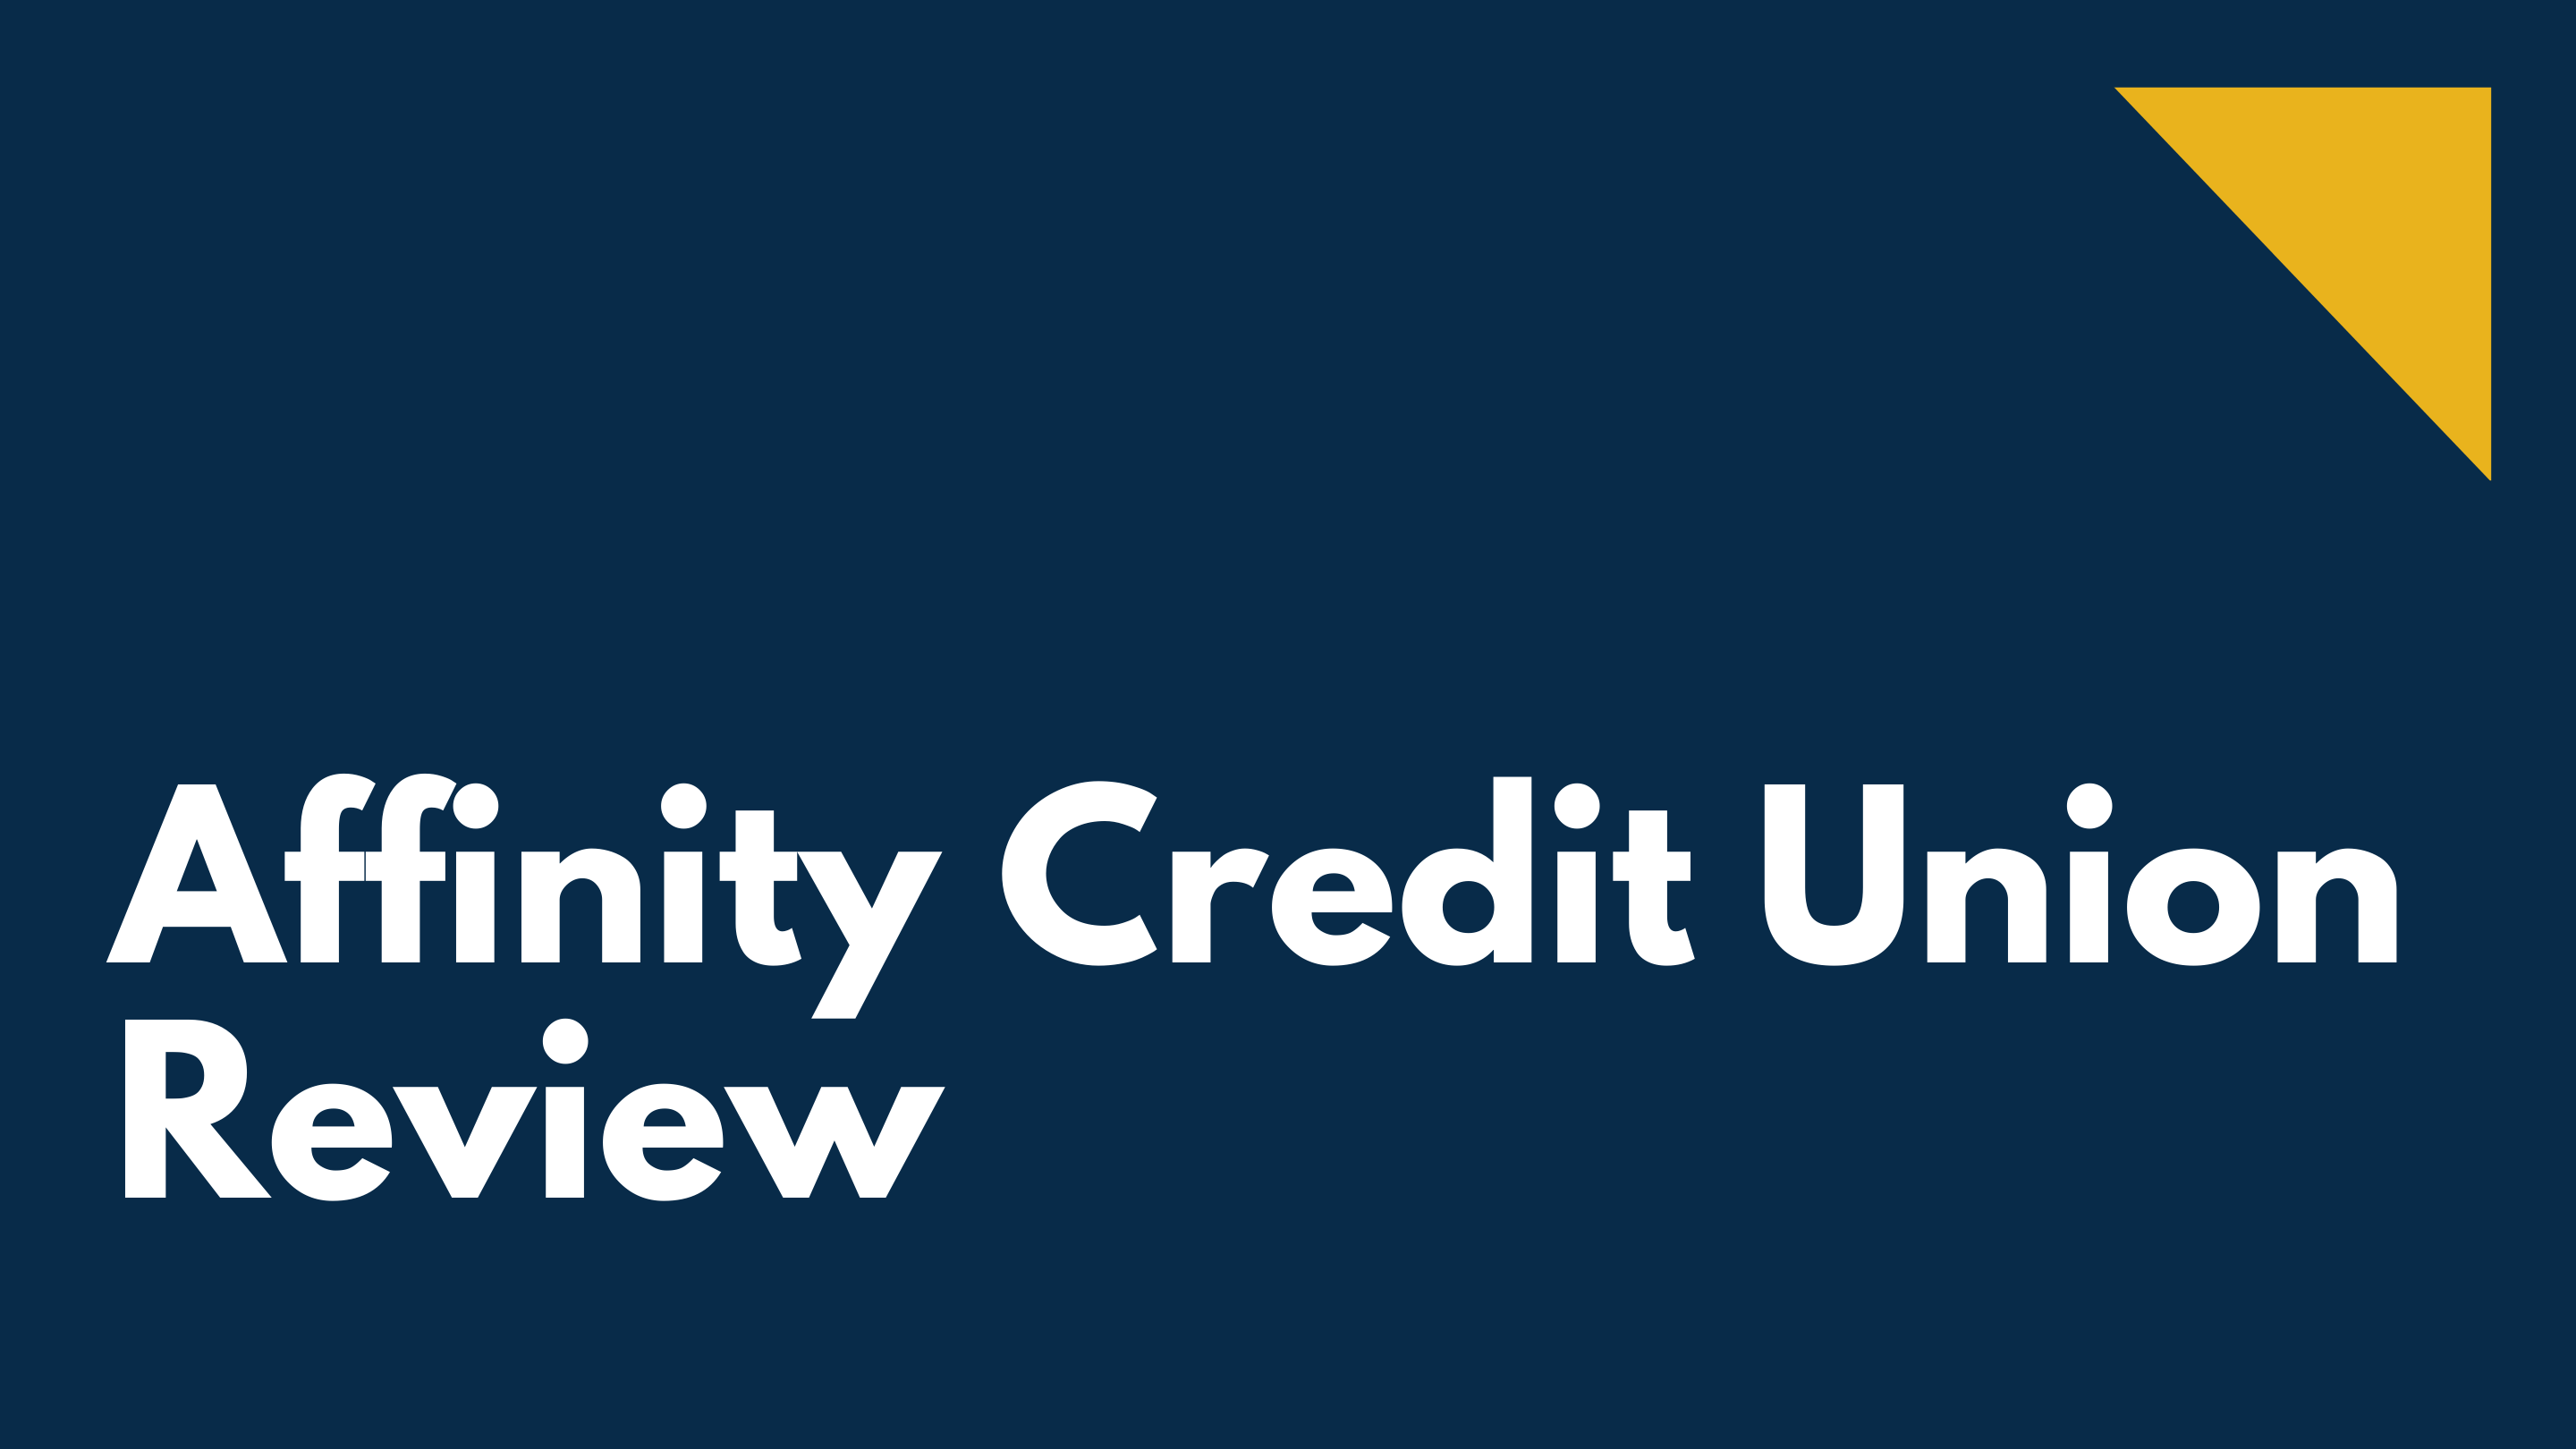 Affinity Credit Union Review